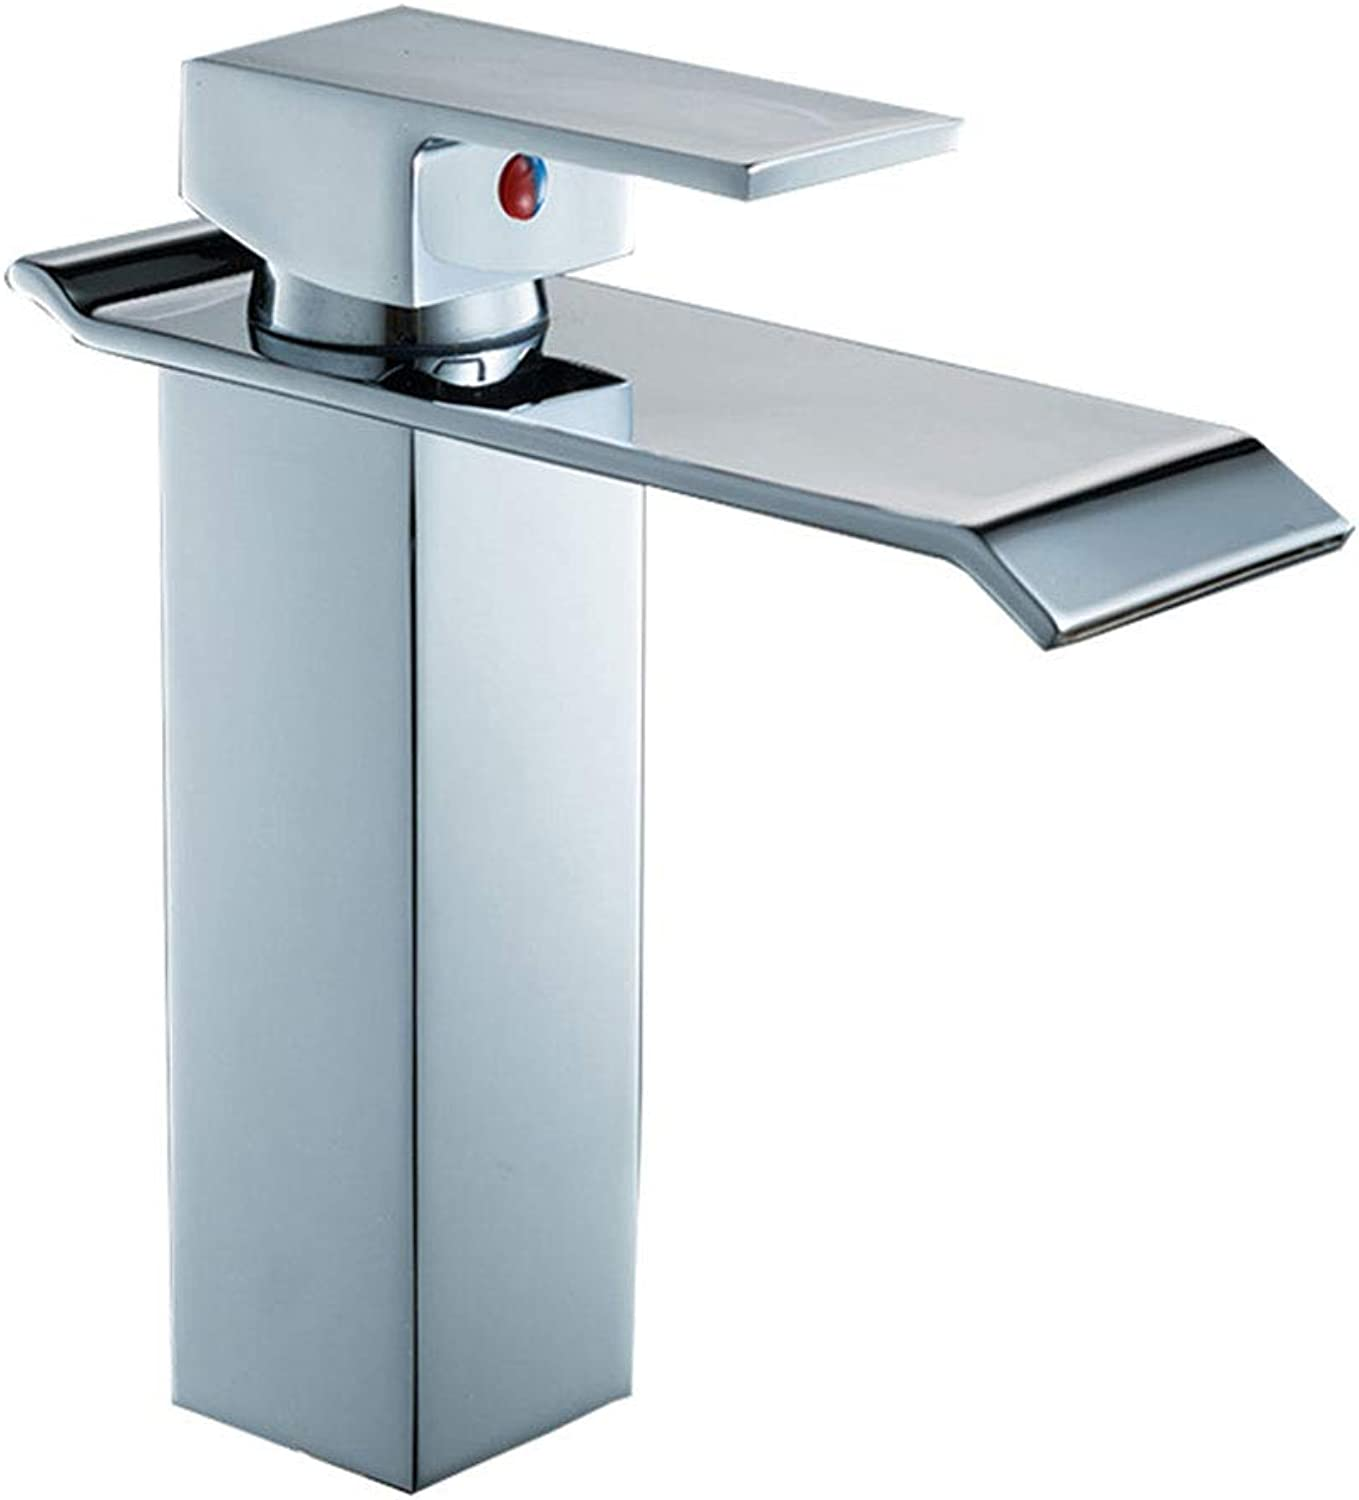 Basin Tap Waterfall Faucet, Modern Style Hot and Cold Single Hole Single Handle Copper Chrome for Bathroom Basin